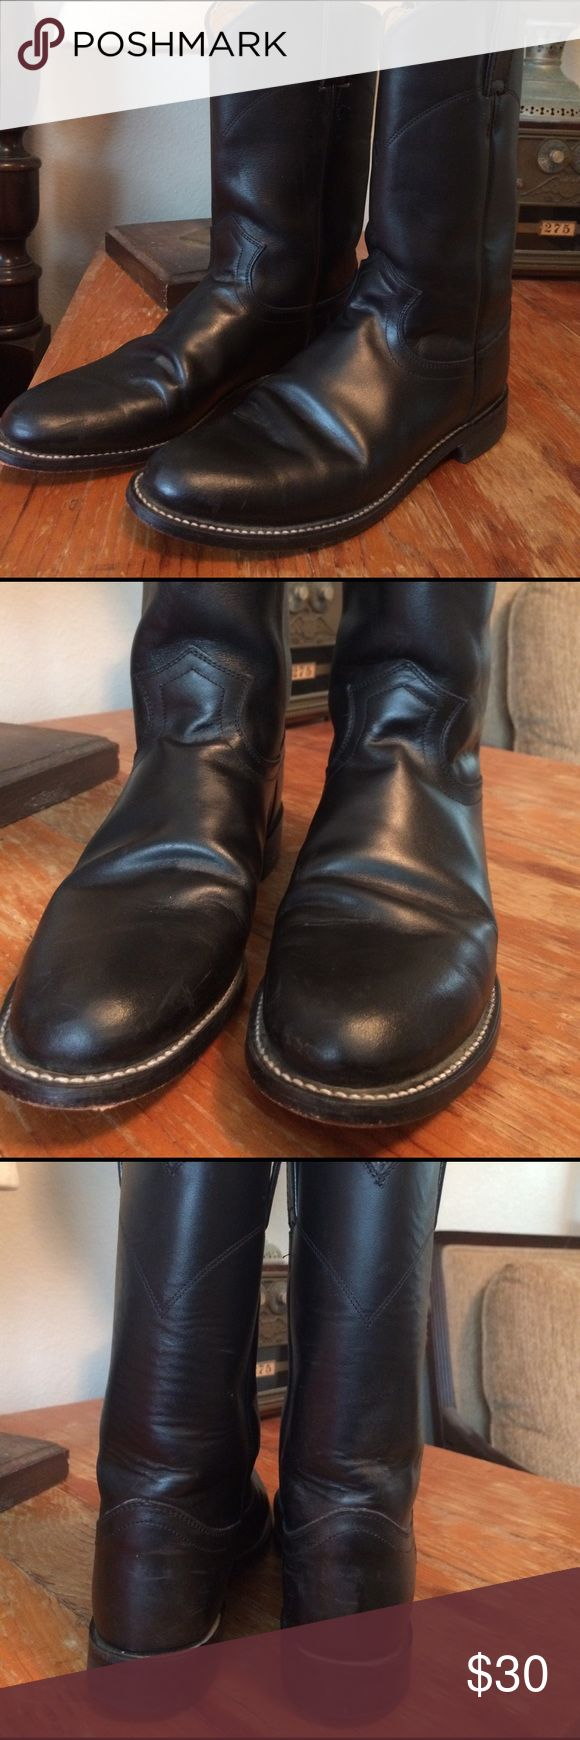 Justin black boots. Pre owned Justin black boots. Registration number 33532S061. Size 61/2B Justin Boots Shoes Heeled Boots